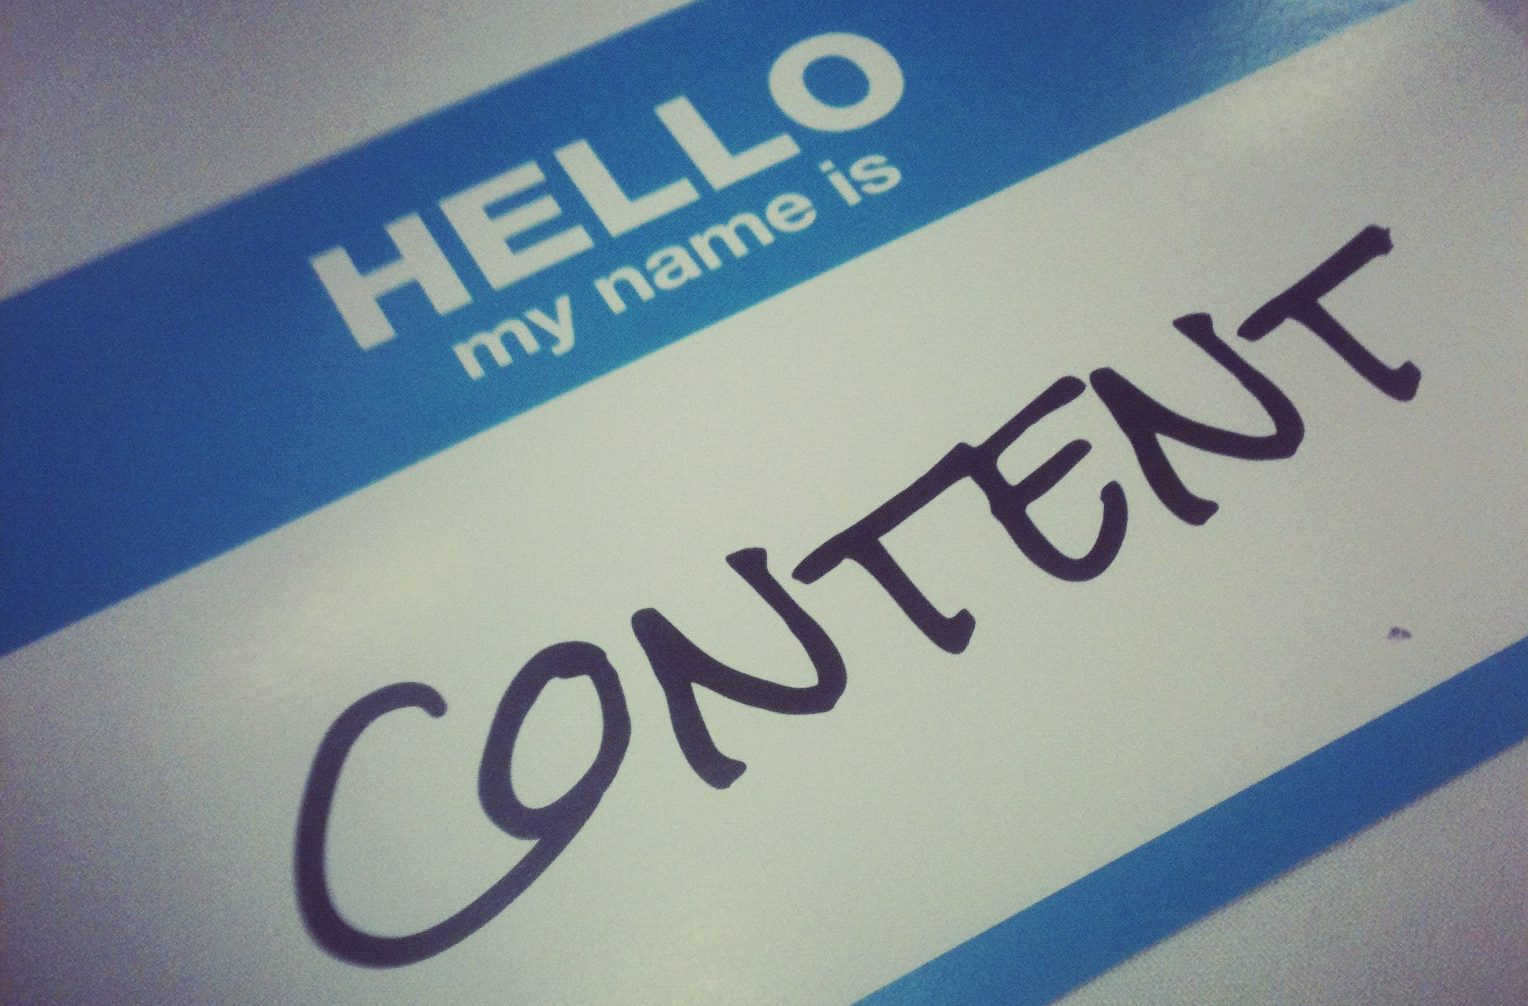 The Top Content Marketing Tips for 2019